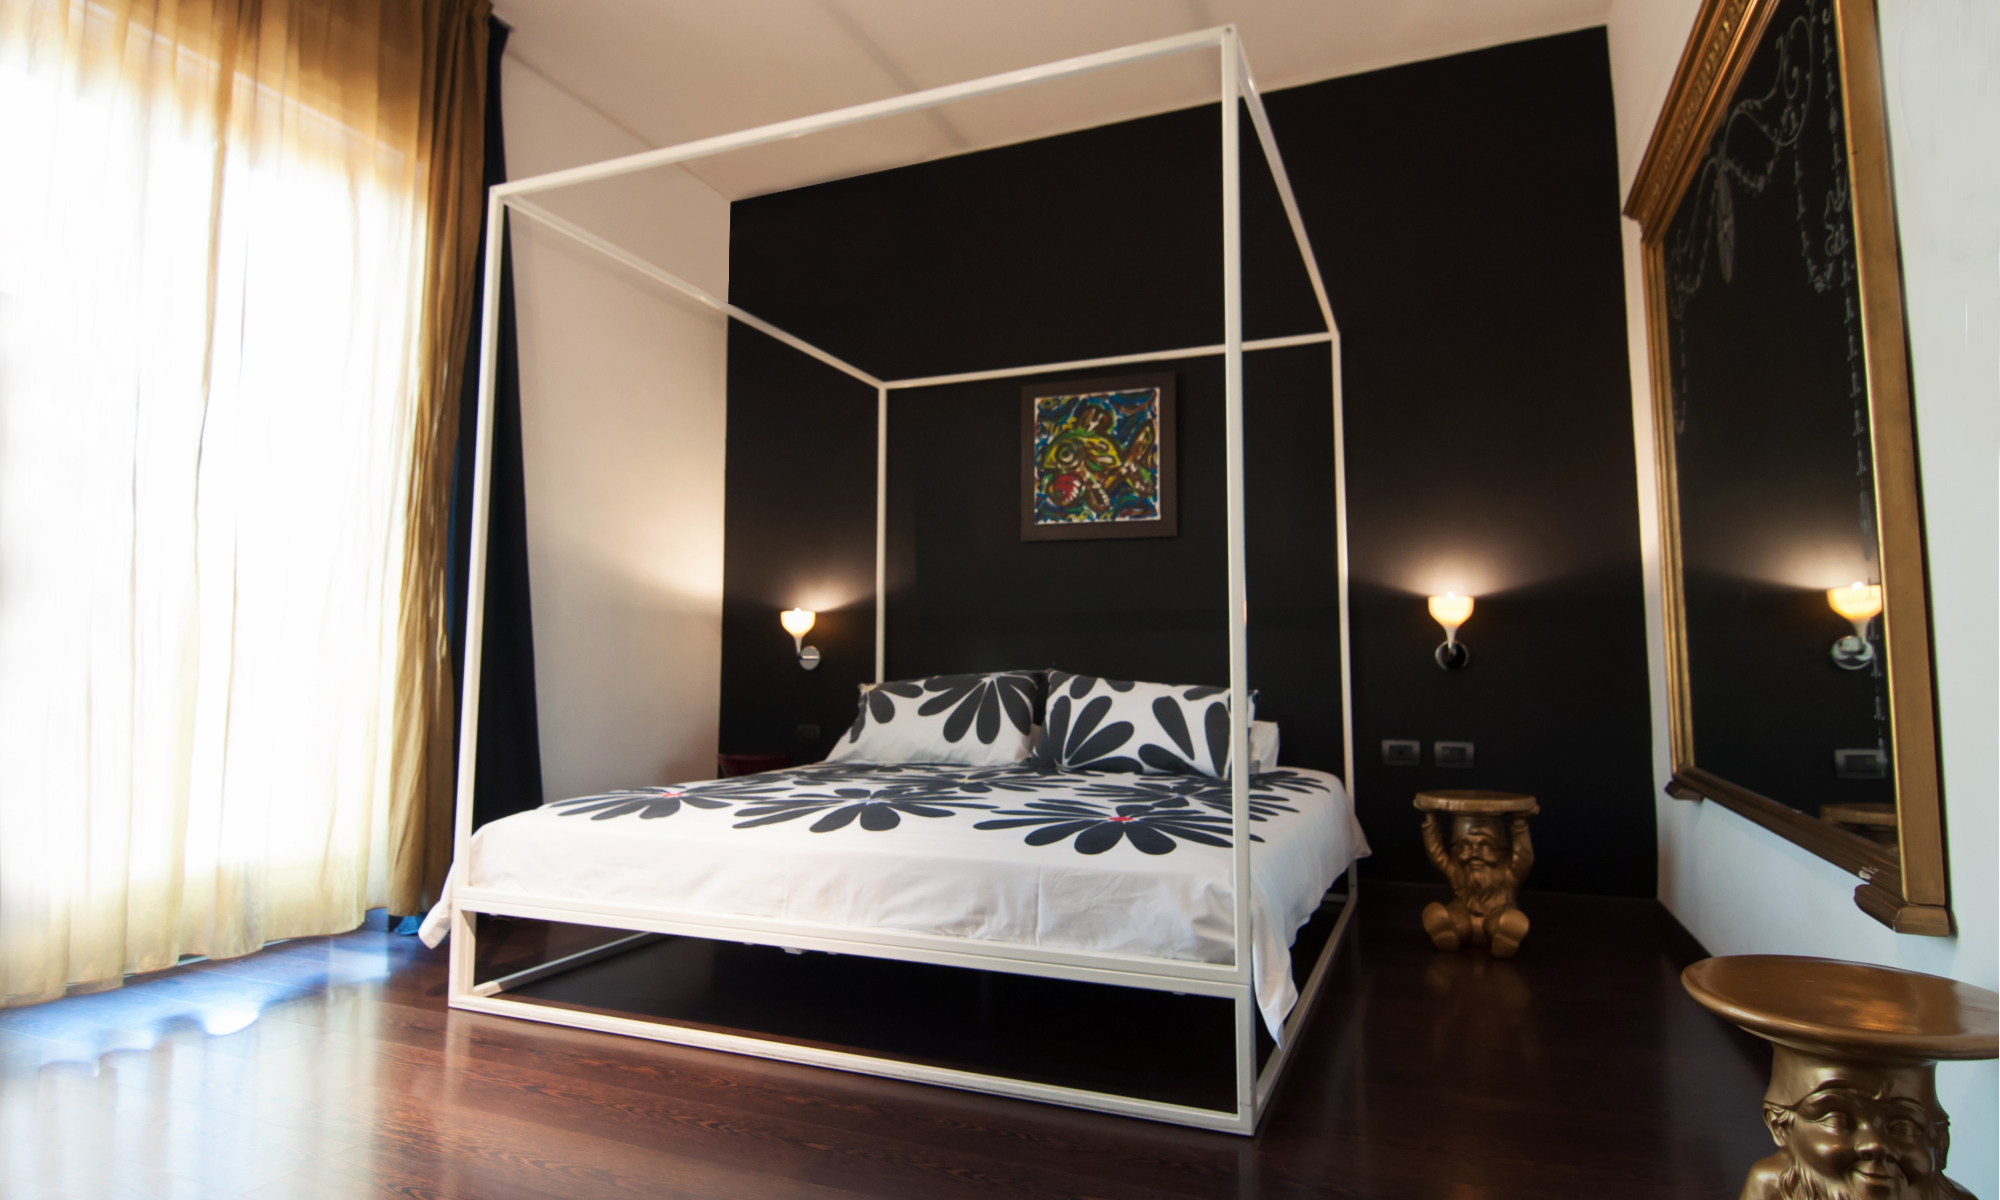 EH13 Luxury Accomodation | B&B Catania, Catania Bed&breakfast, Bed and Breakfast Catania,  B&B Sicilia, Catania rooms,  Catania zimmer, Catania chambres